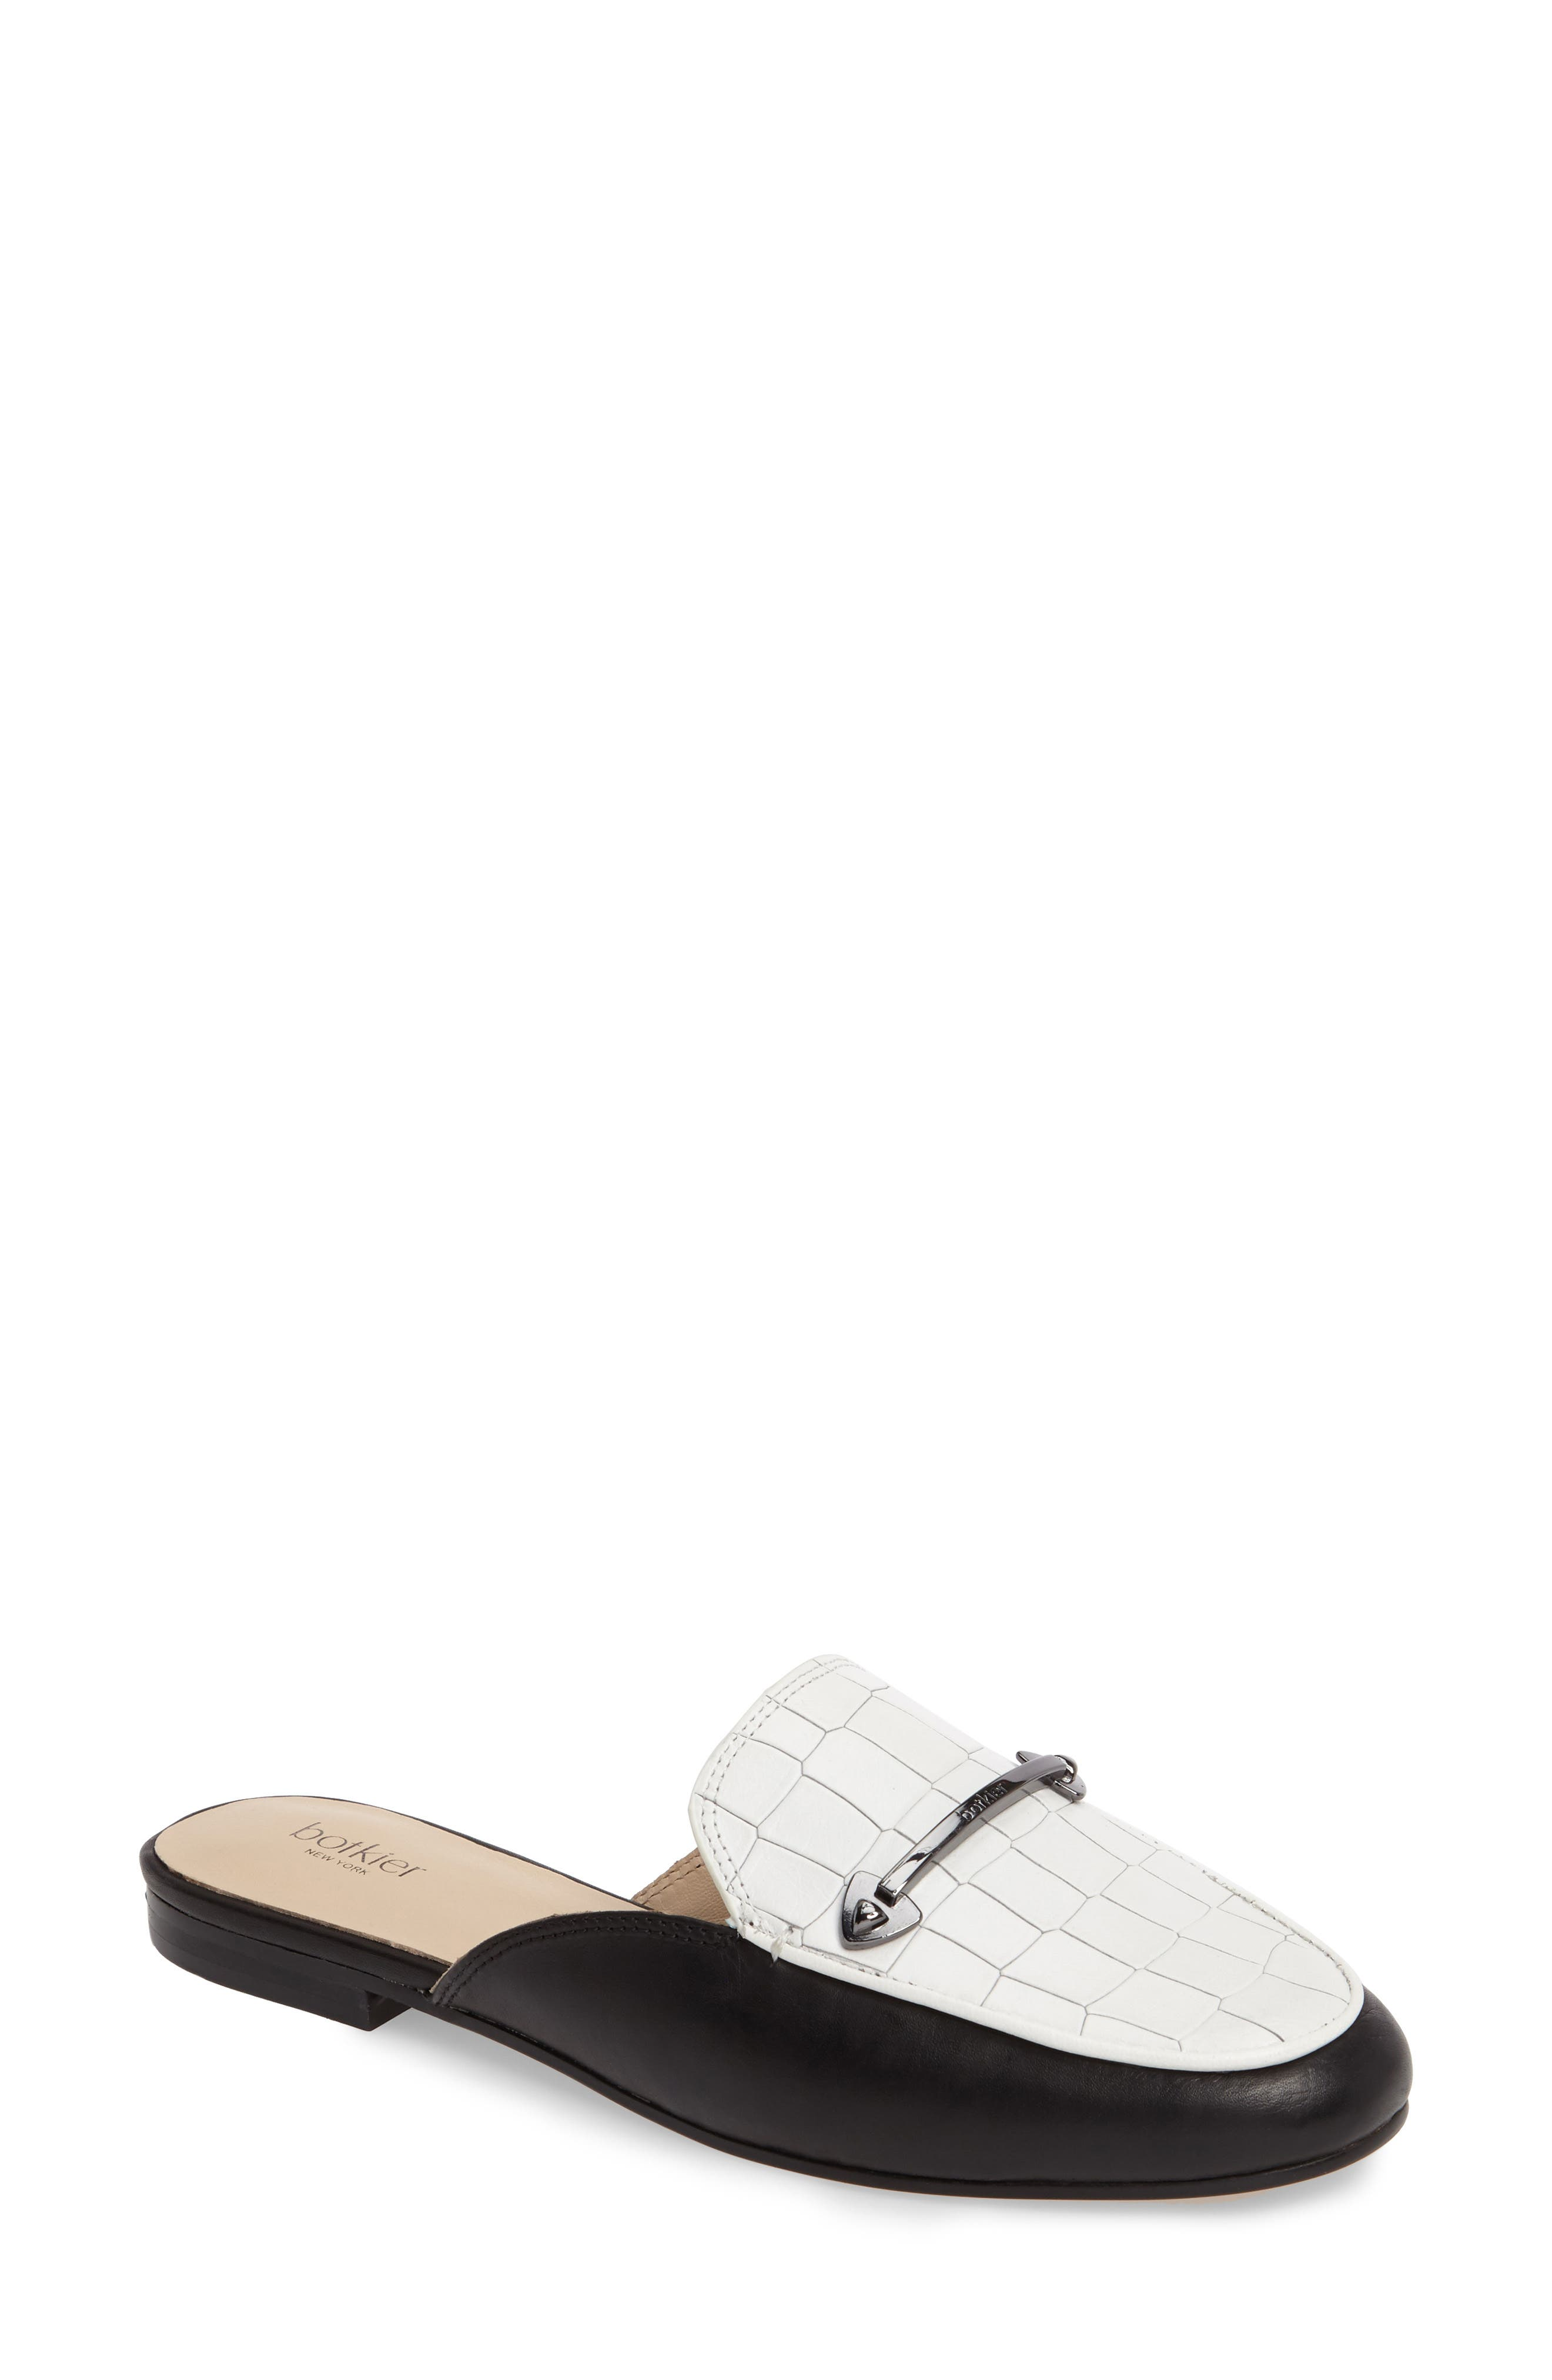 Botkier Women's Clare Loafer Mule FqNaGhy0